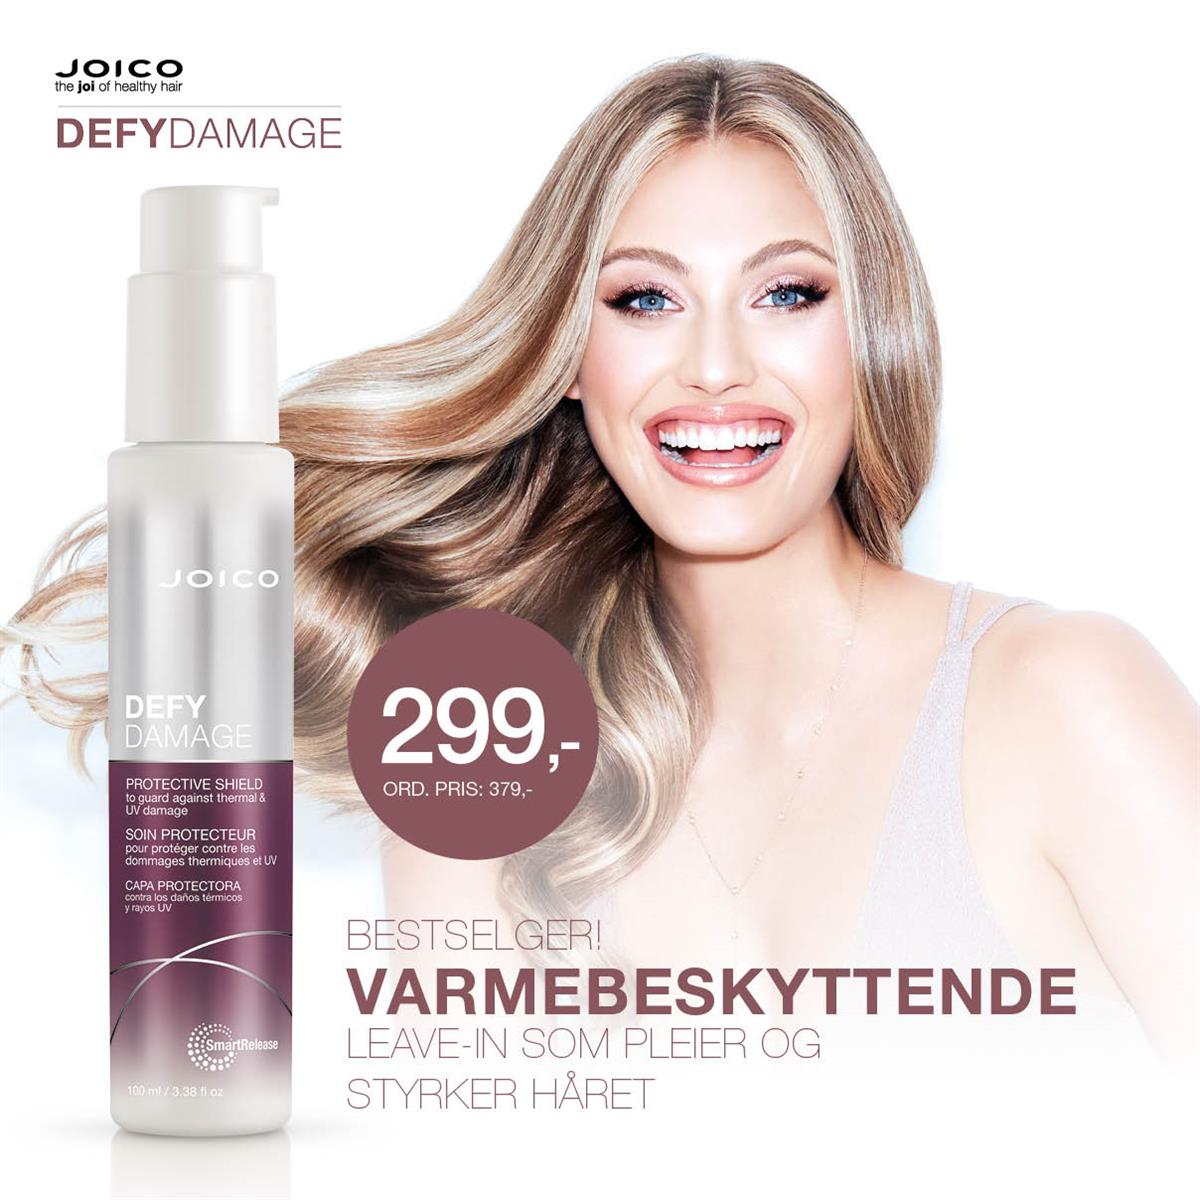 JOICO DEFY DAMAGE SHIELD - KAMPANJE JANUAR 2020